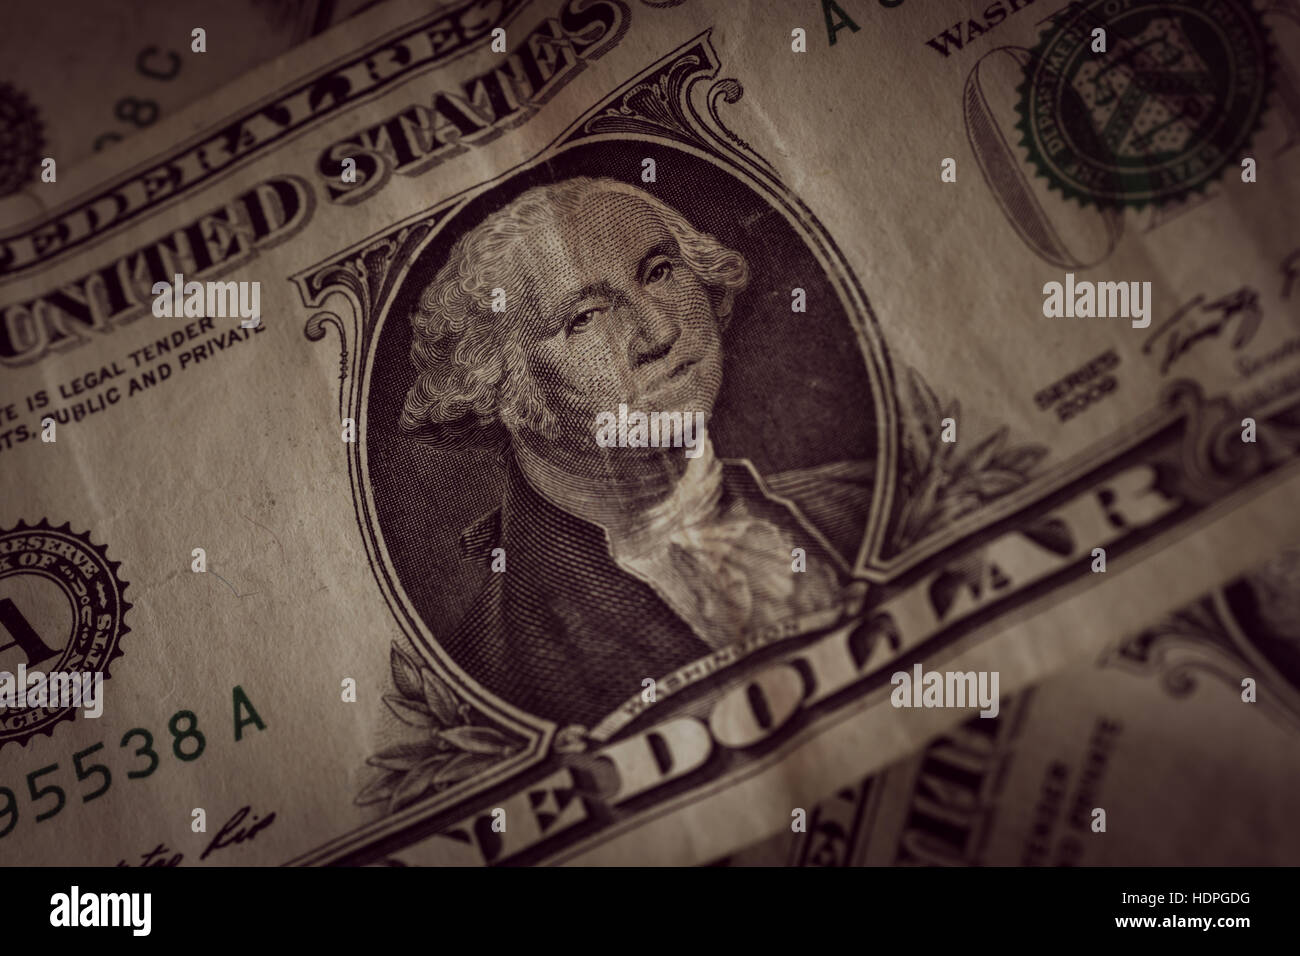 Old and crumpled United States one dollar bank notes photographed with shallow focus and an antique filter applied Stock Photo